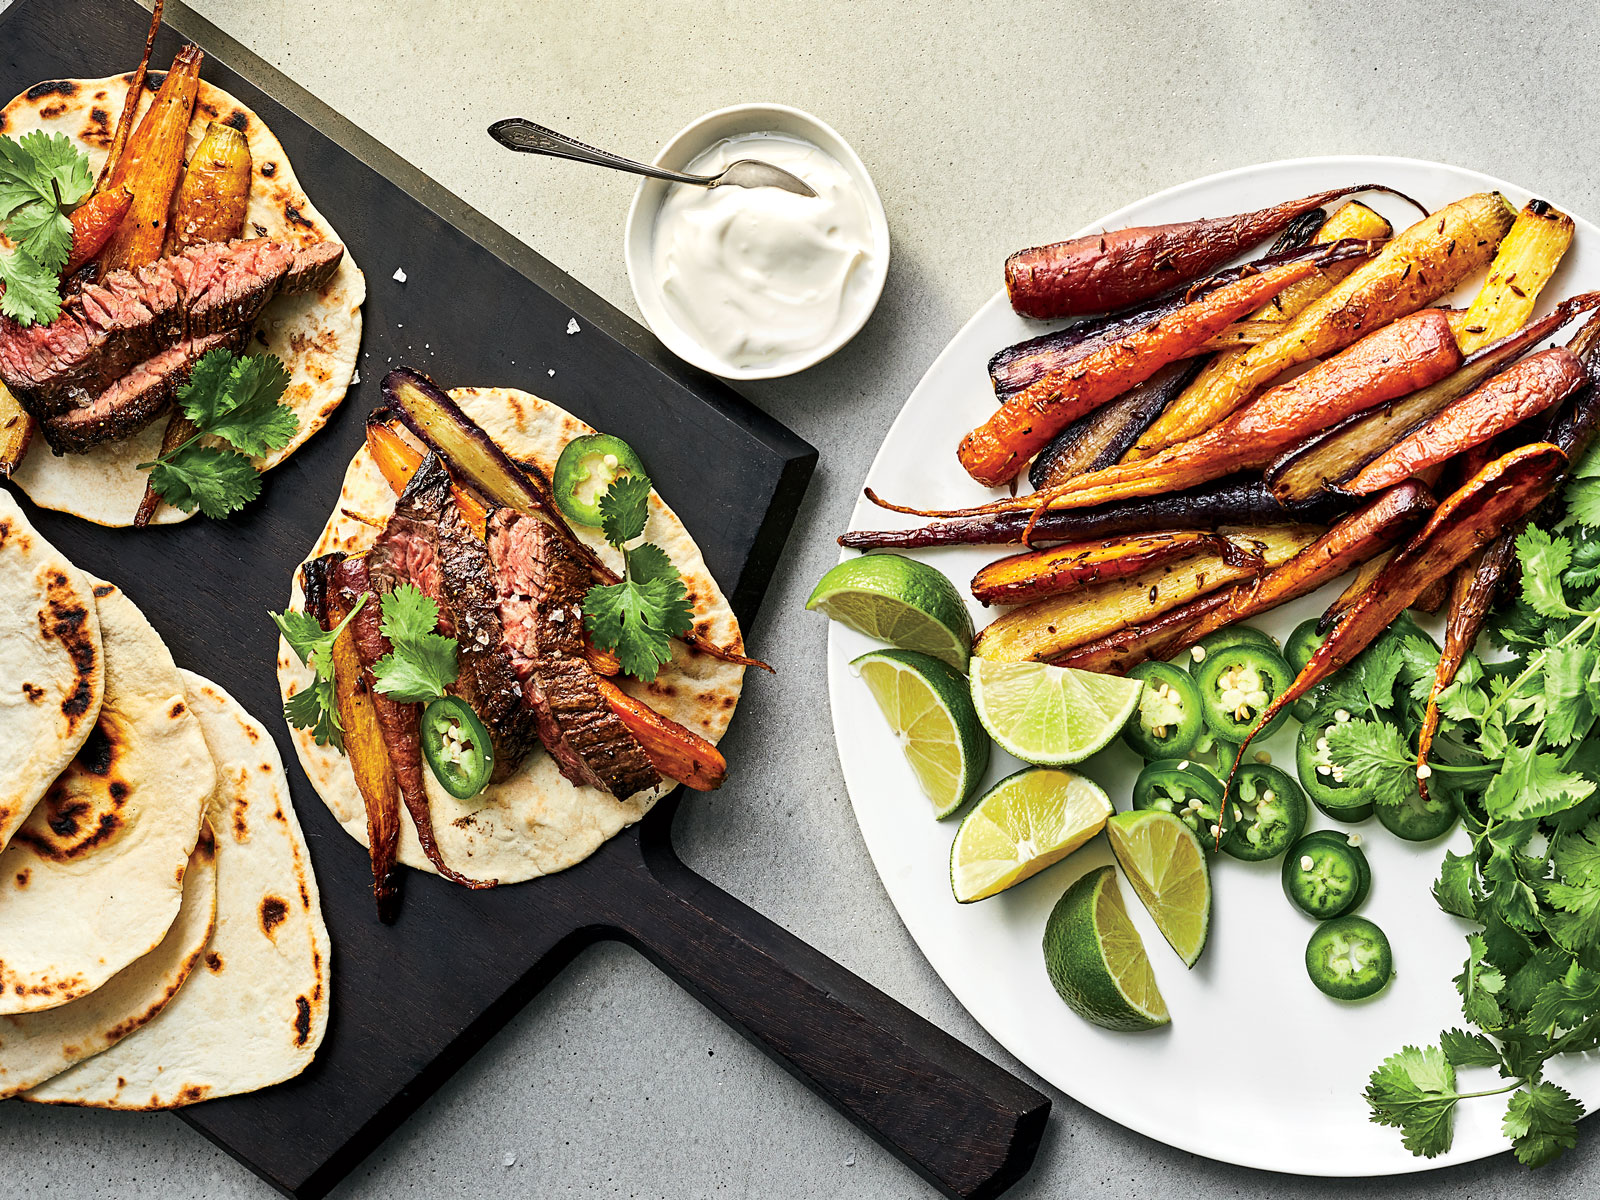 Steak-and-Carrot Tacos